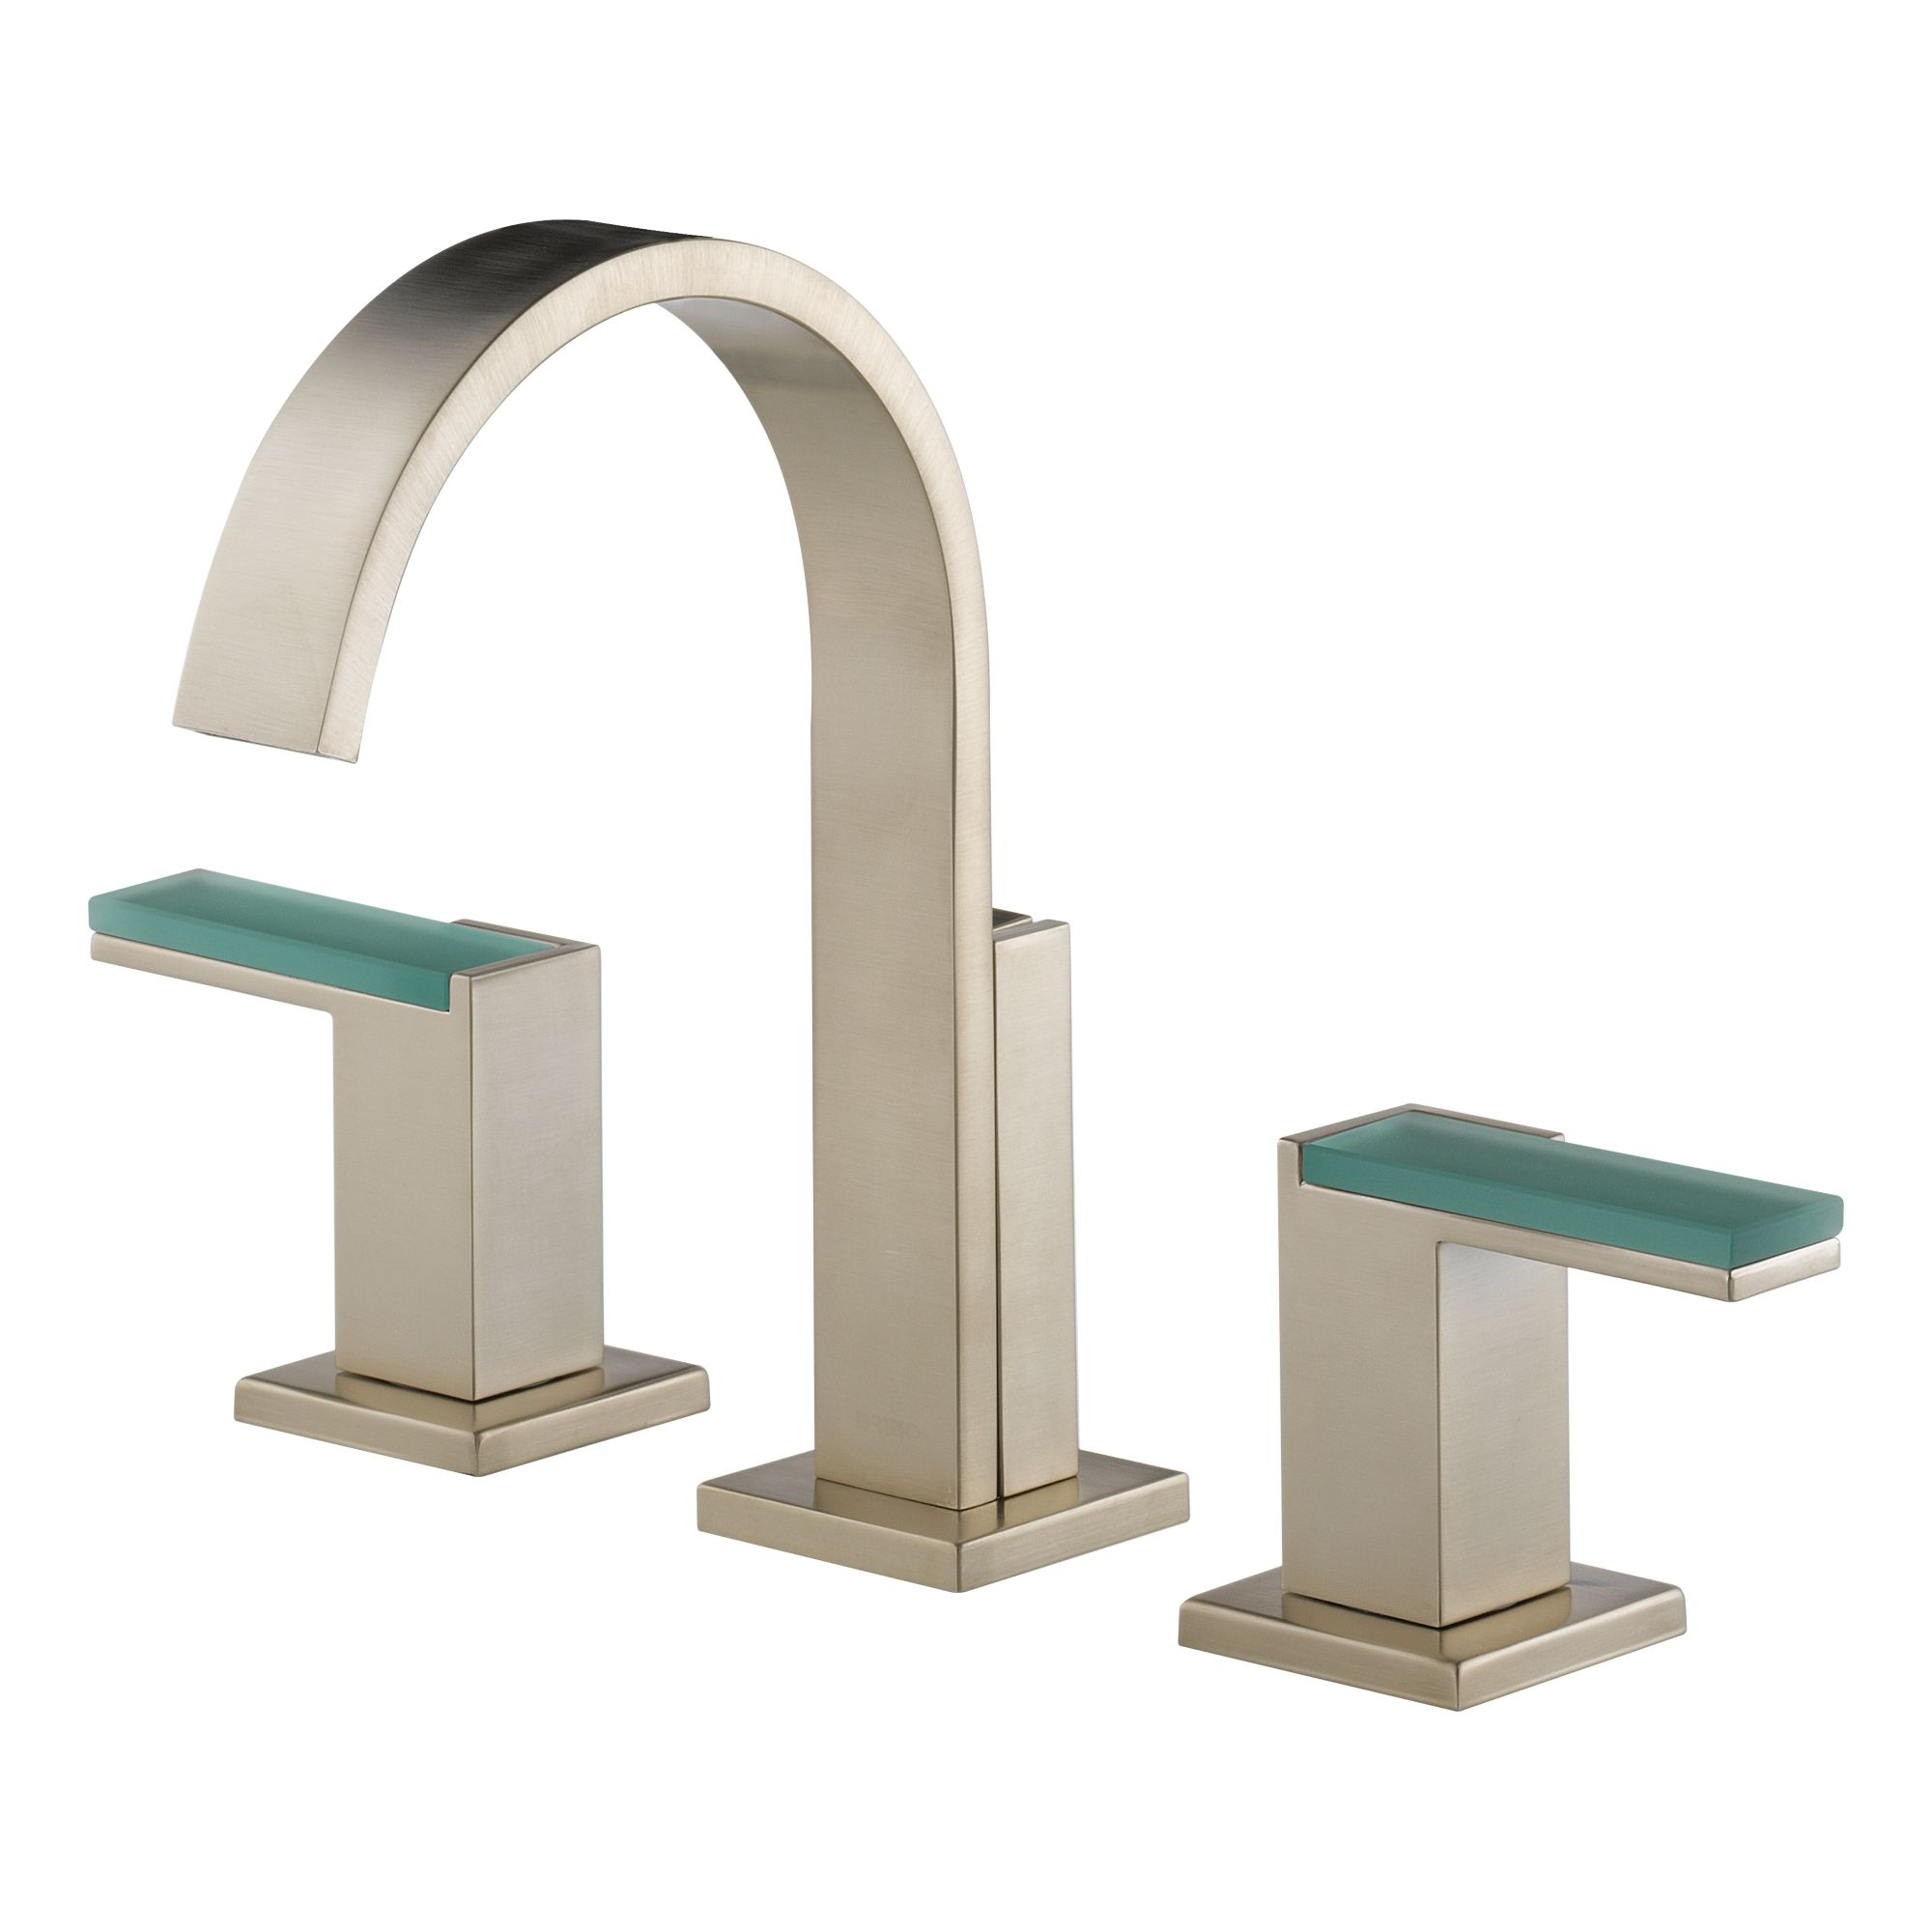 Brizo 65380LF-BNLHP-ECO Brilliance Brushed Nickel Siderna Widespread Bathroom Faucet with Pop-Up Drain Assembly - Includes Lifetime Warranty - Less Handles ...